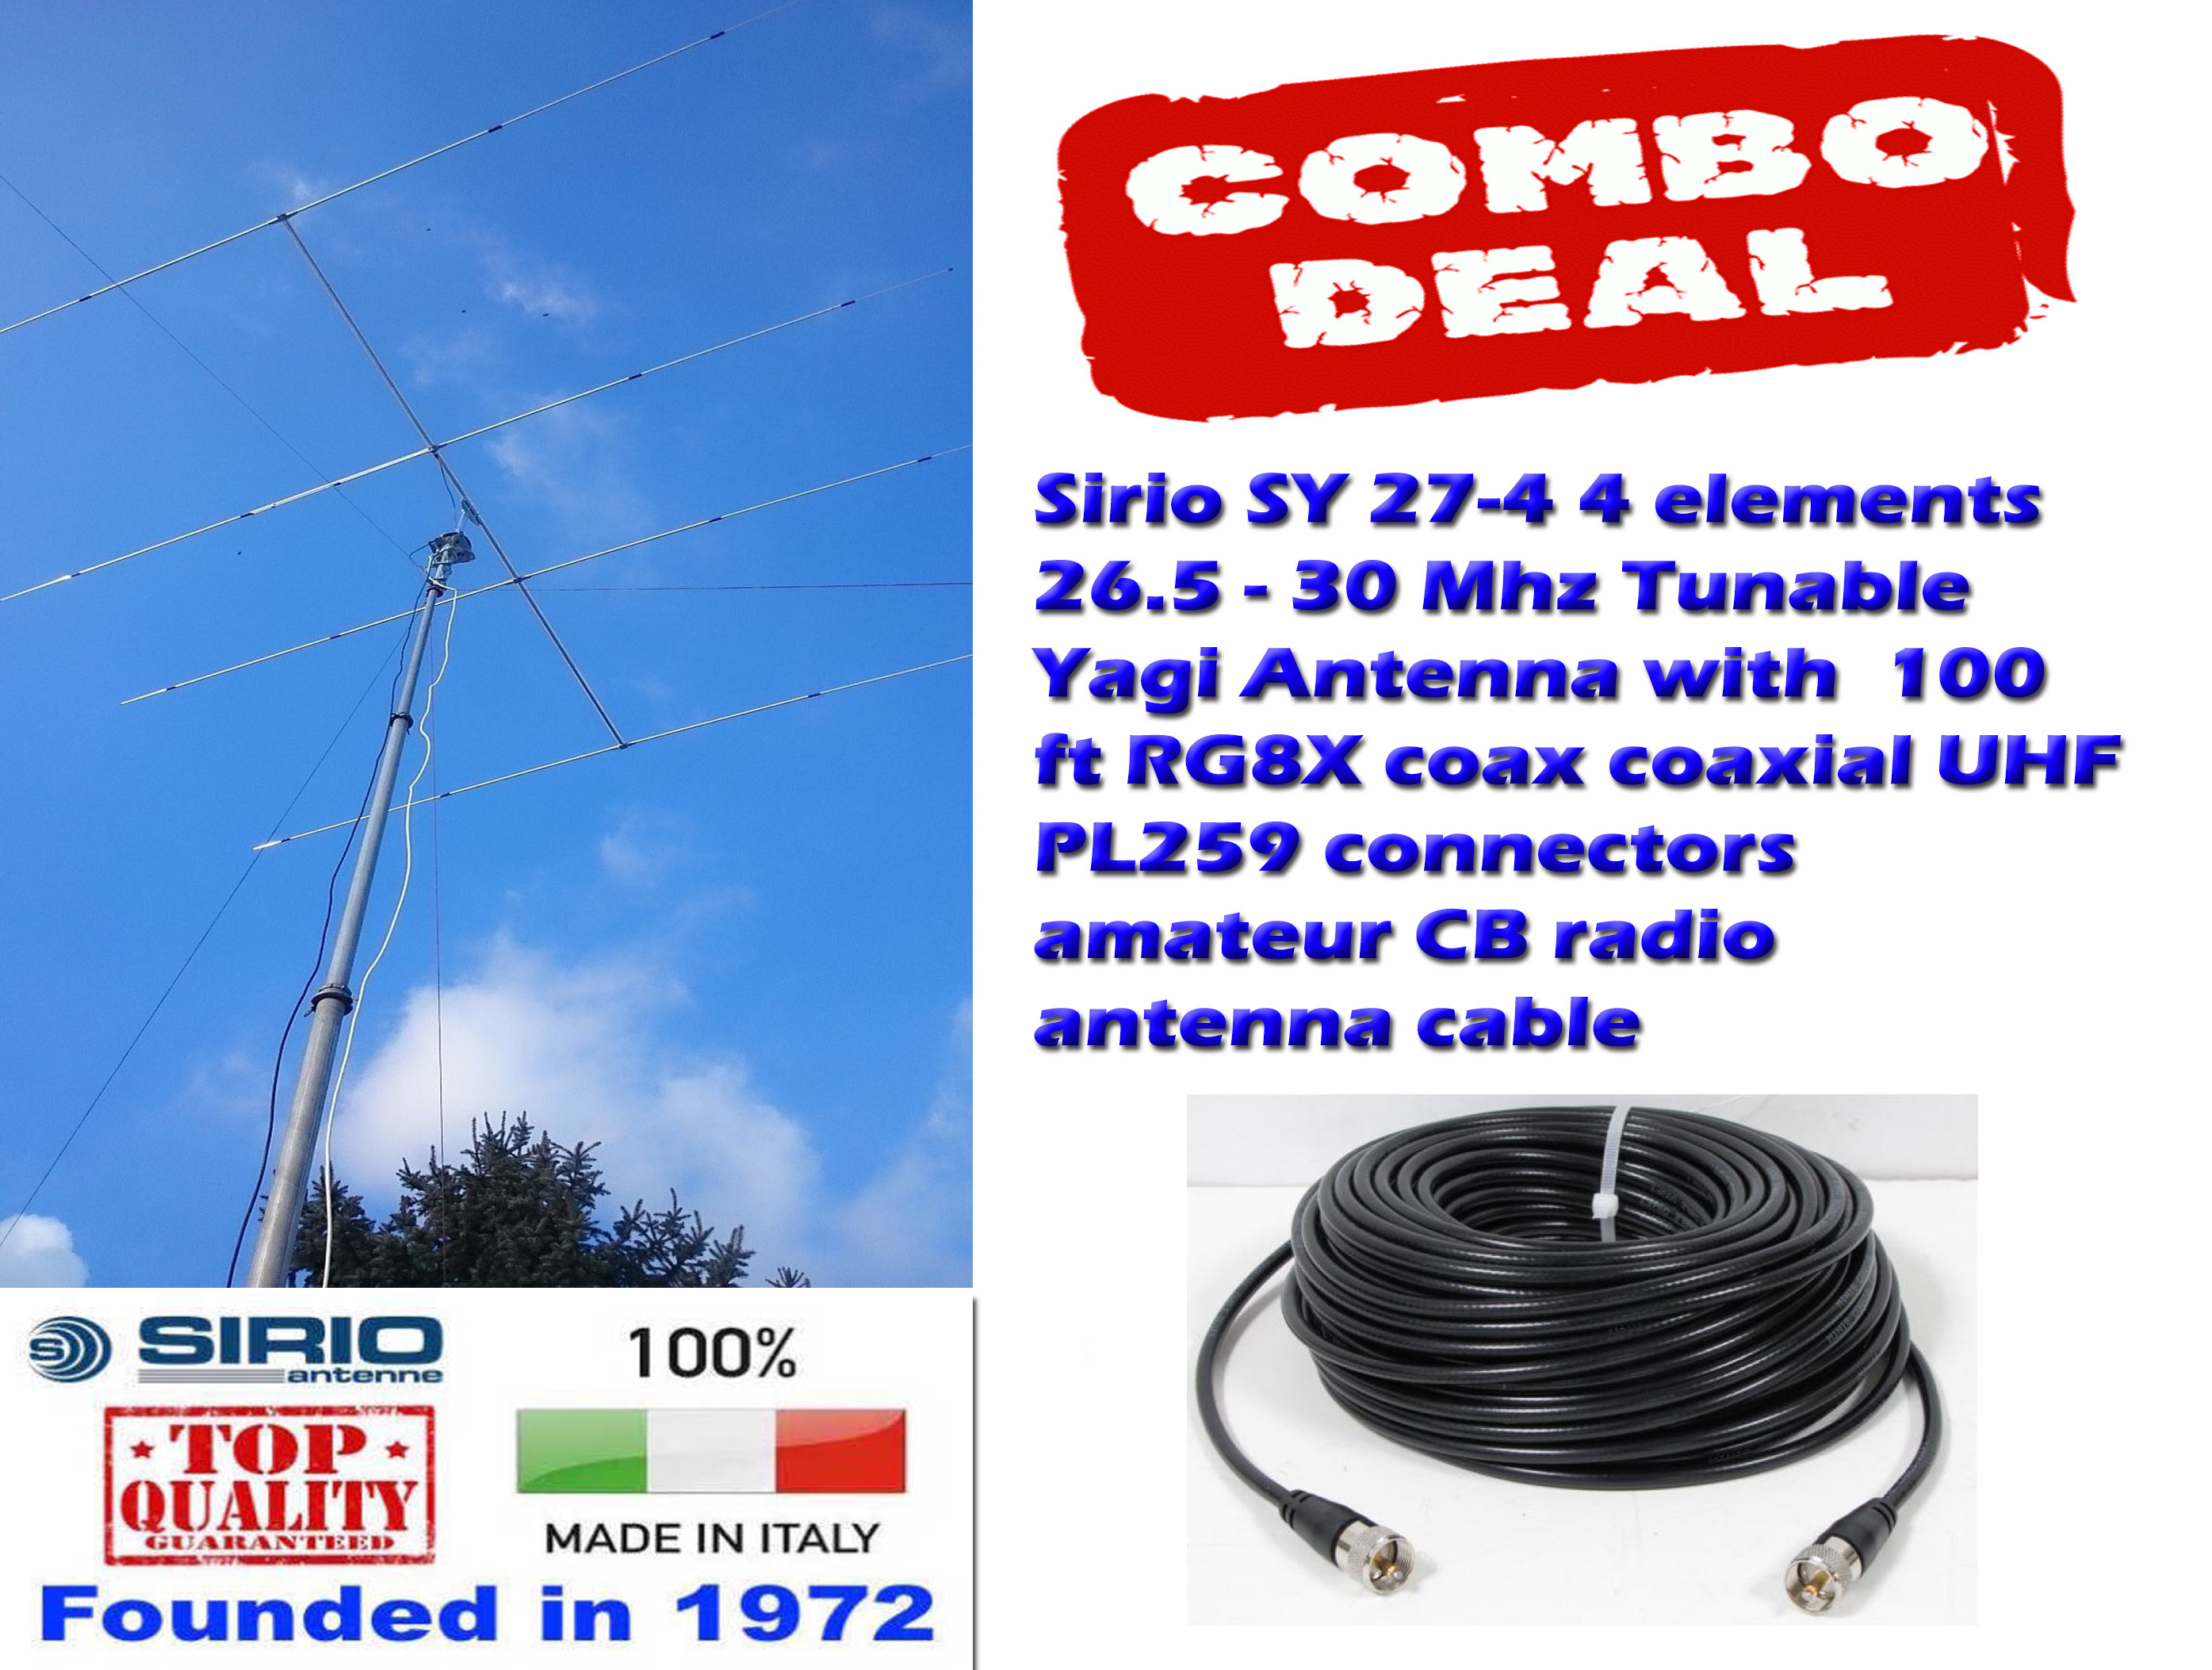 Sirio SY 27-4 4 elements Tunable Yagi Antenna with 100 Ft Coax